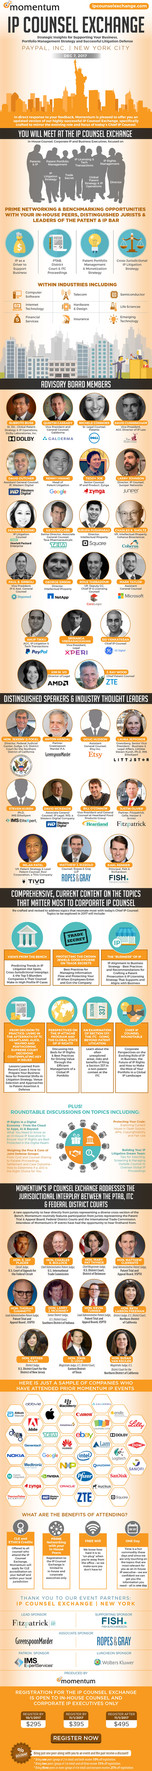 IP Counsel Exchange